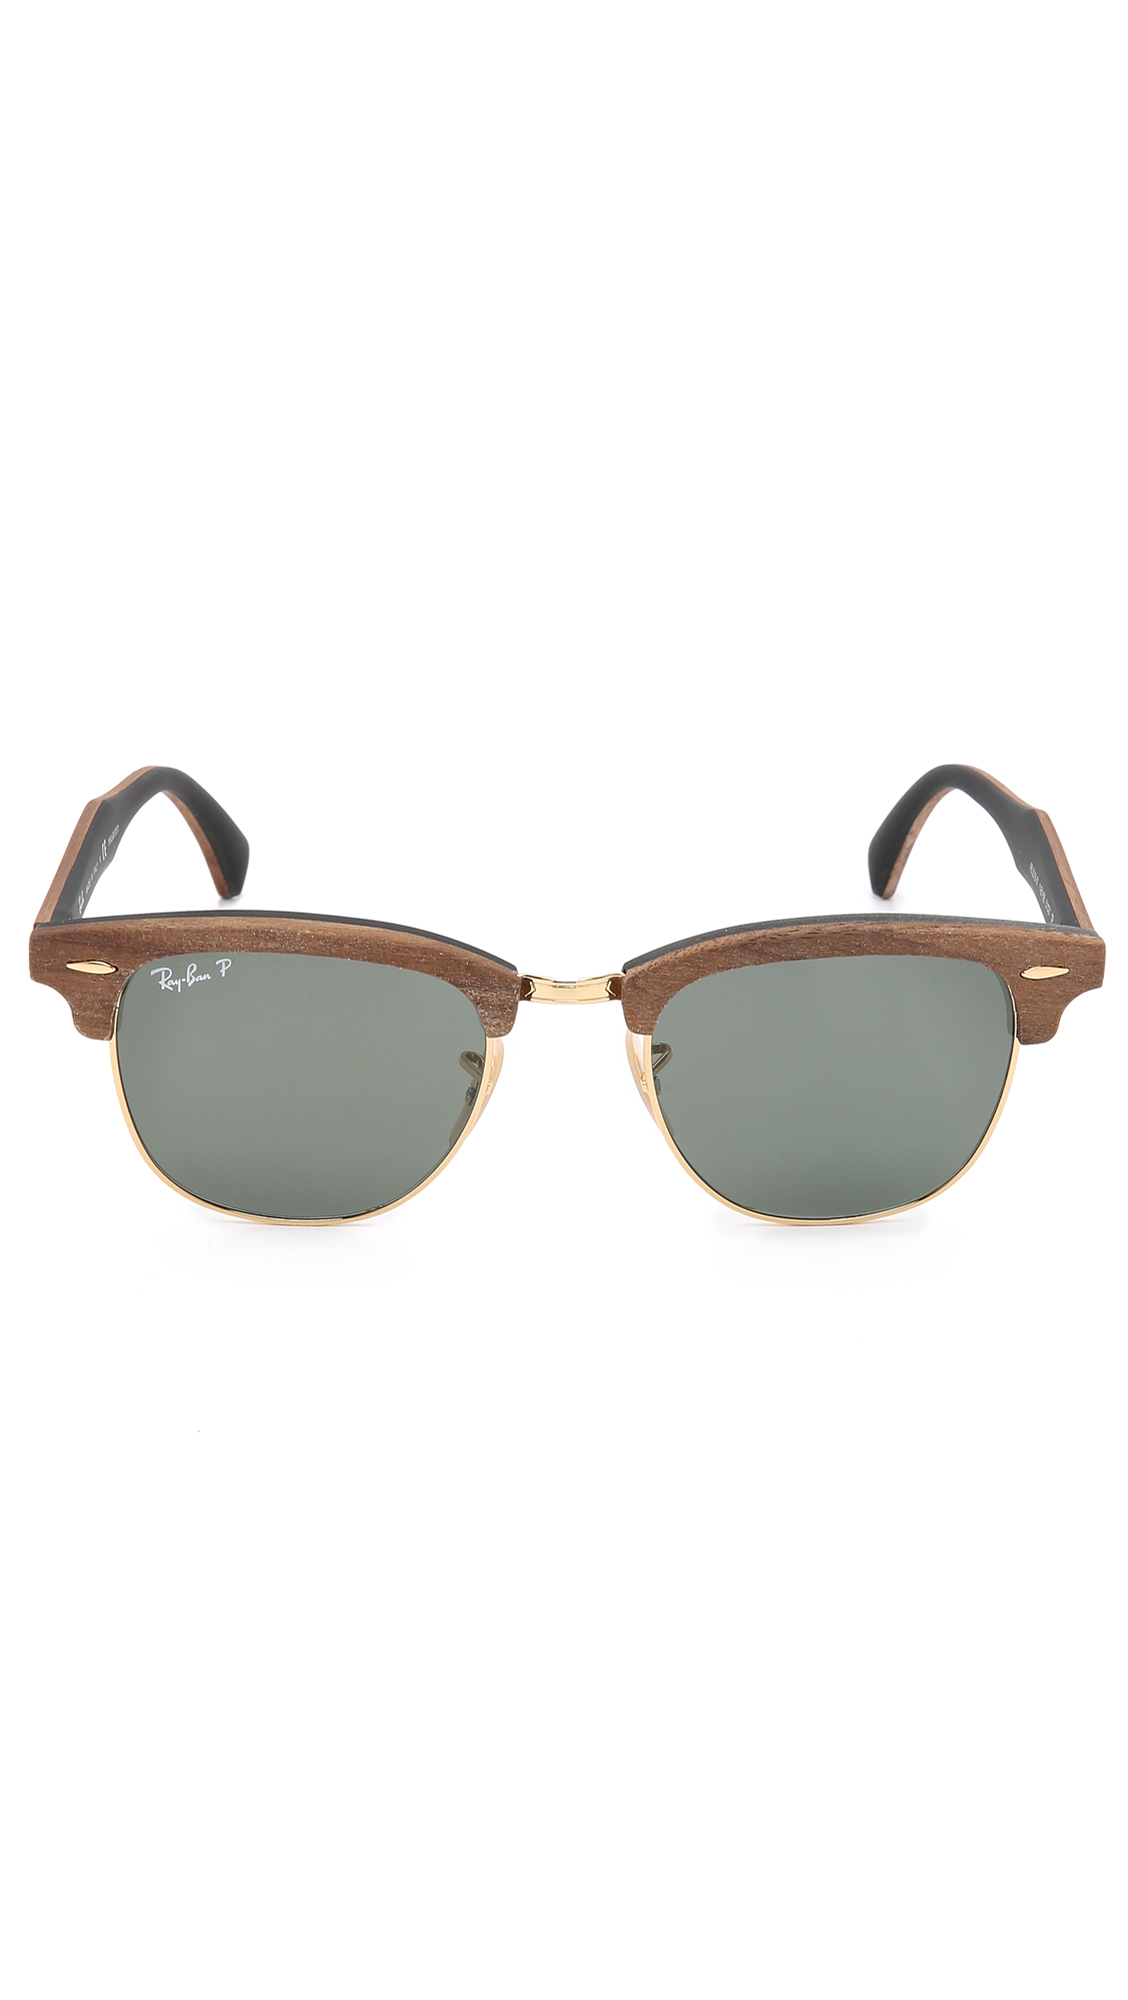 2019 most cheap ray ban sunglasses 2018 discount